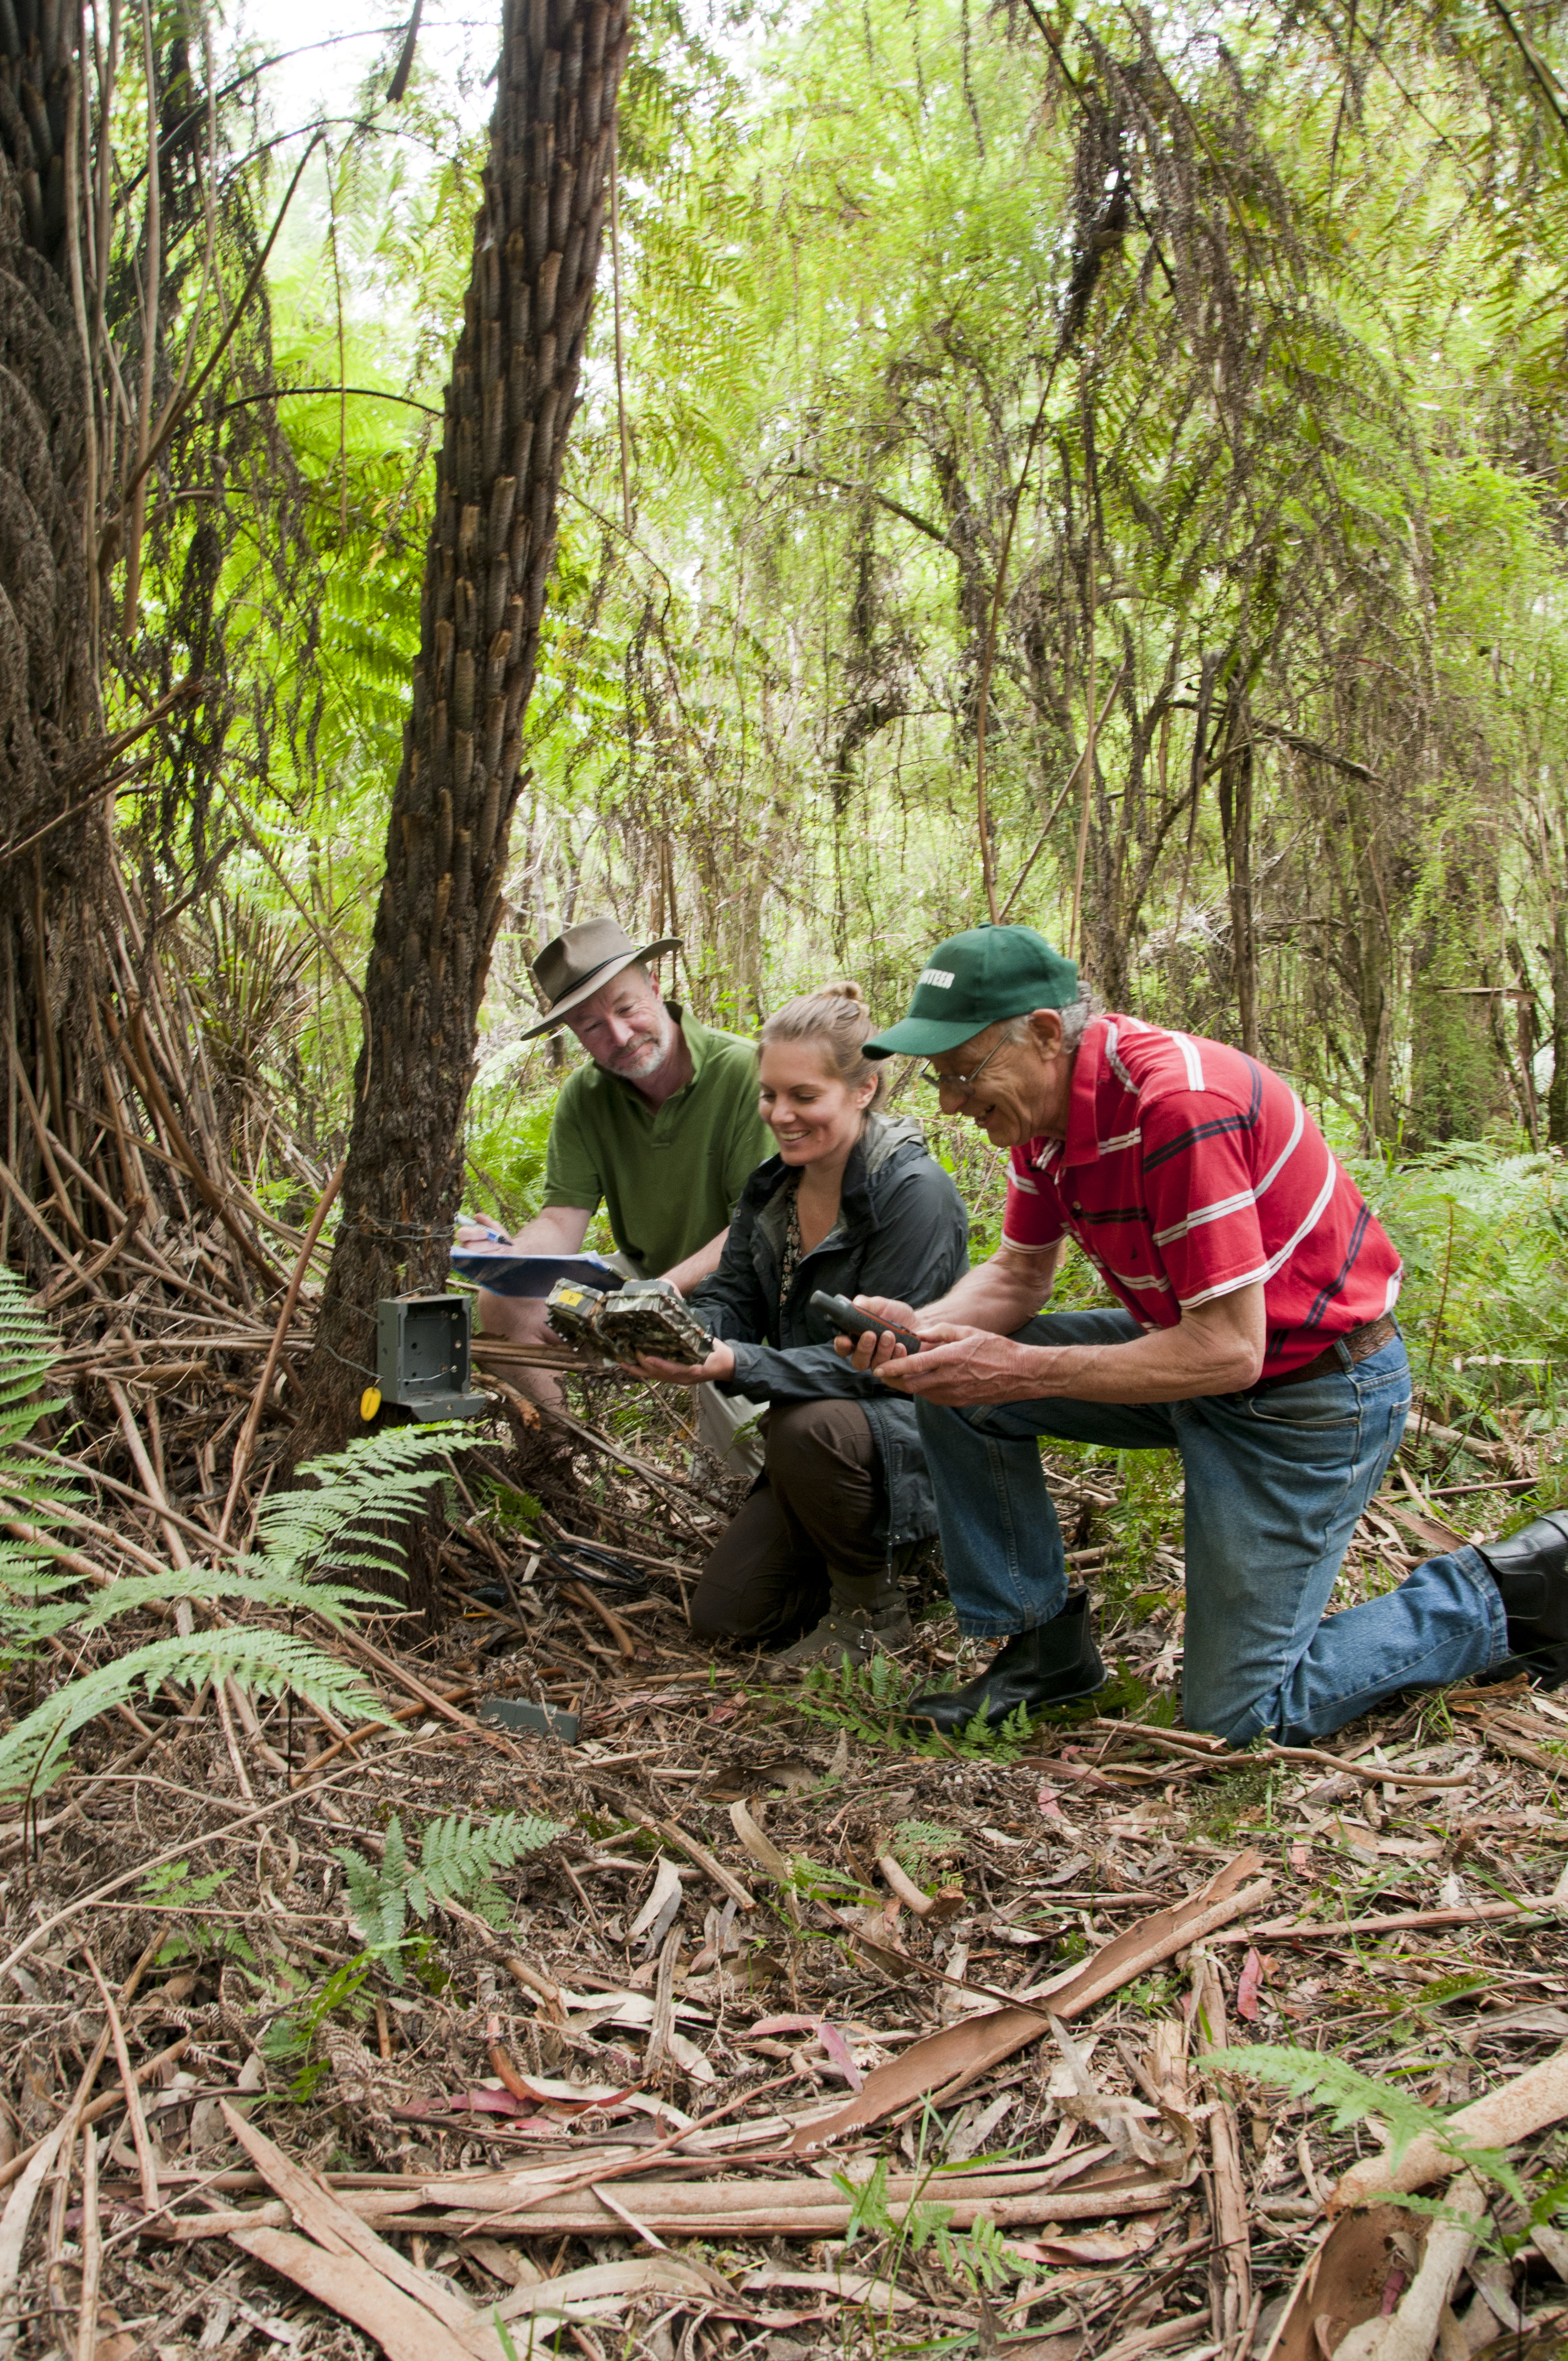 Ian Vaskess (left), Jasper Hails (from Friends of Bunyip State Park) and Christine Connelly (from Victorian National Parks Association)  checking a wildlife monitoring camera trap. Photograph by Tracey Koper